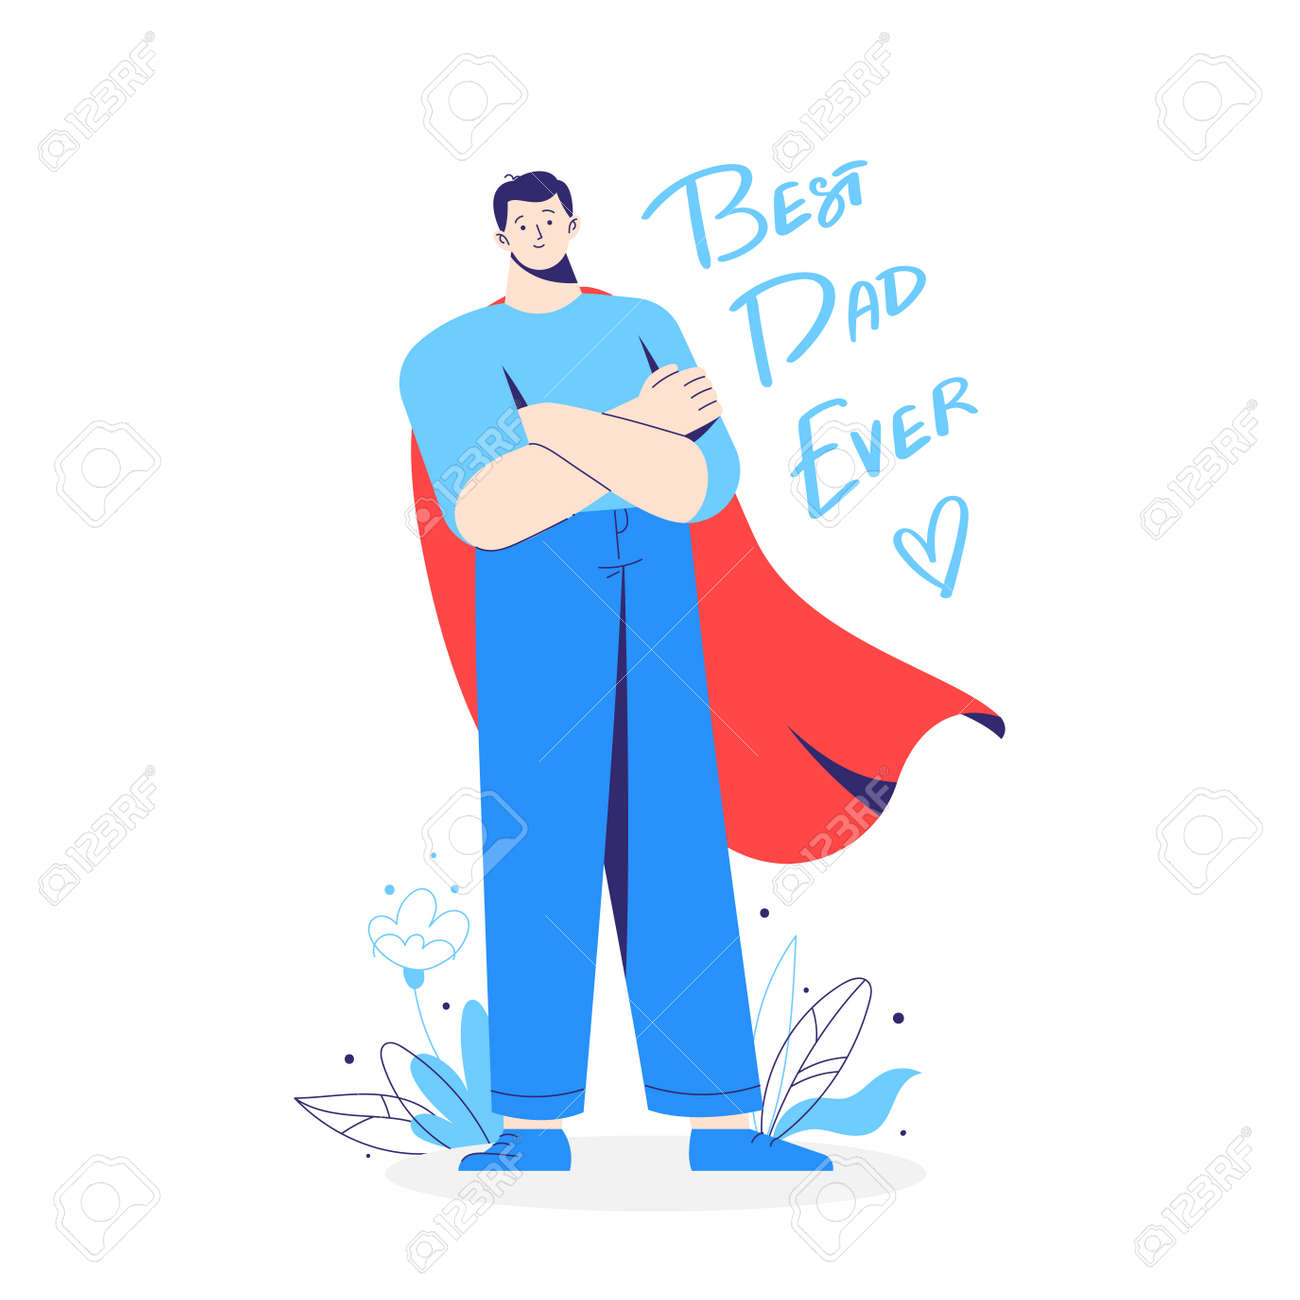 Father, dad, daddy as a hero, in a superhero costume with red cloak. Inscription best dad ever. - 171651050